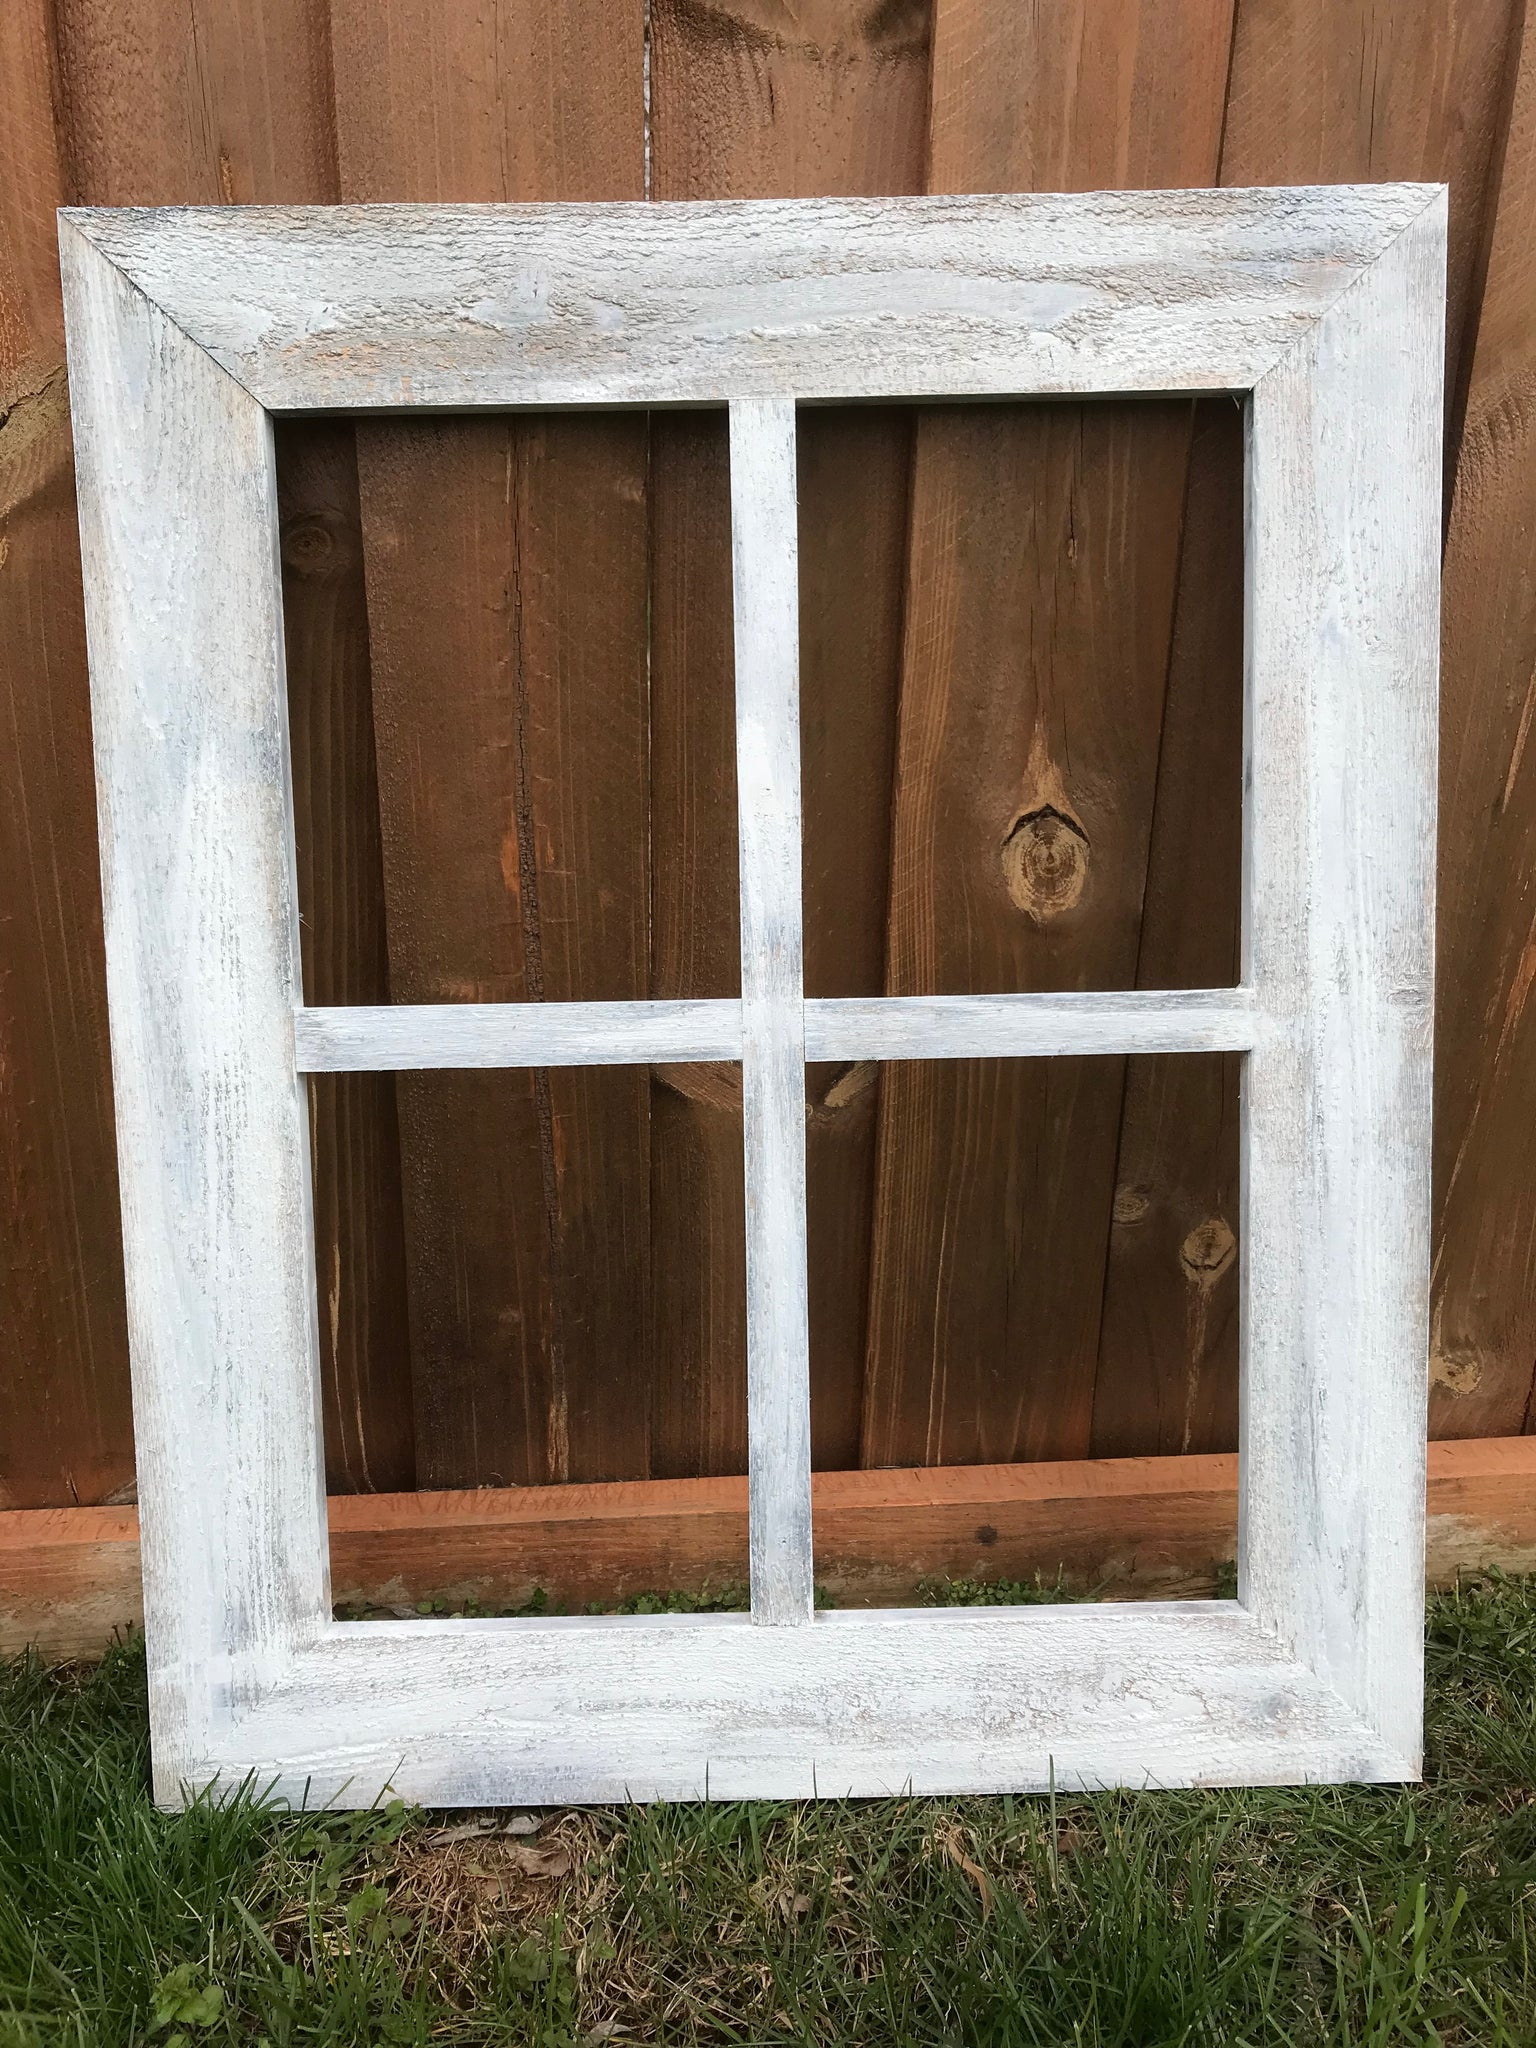 Rustic Window Frame - 4 Pane Wide Frame Vintage Distressed Window ...